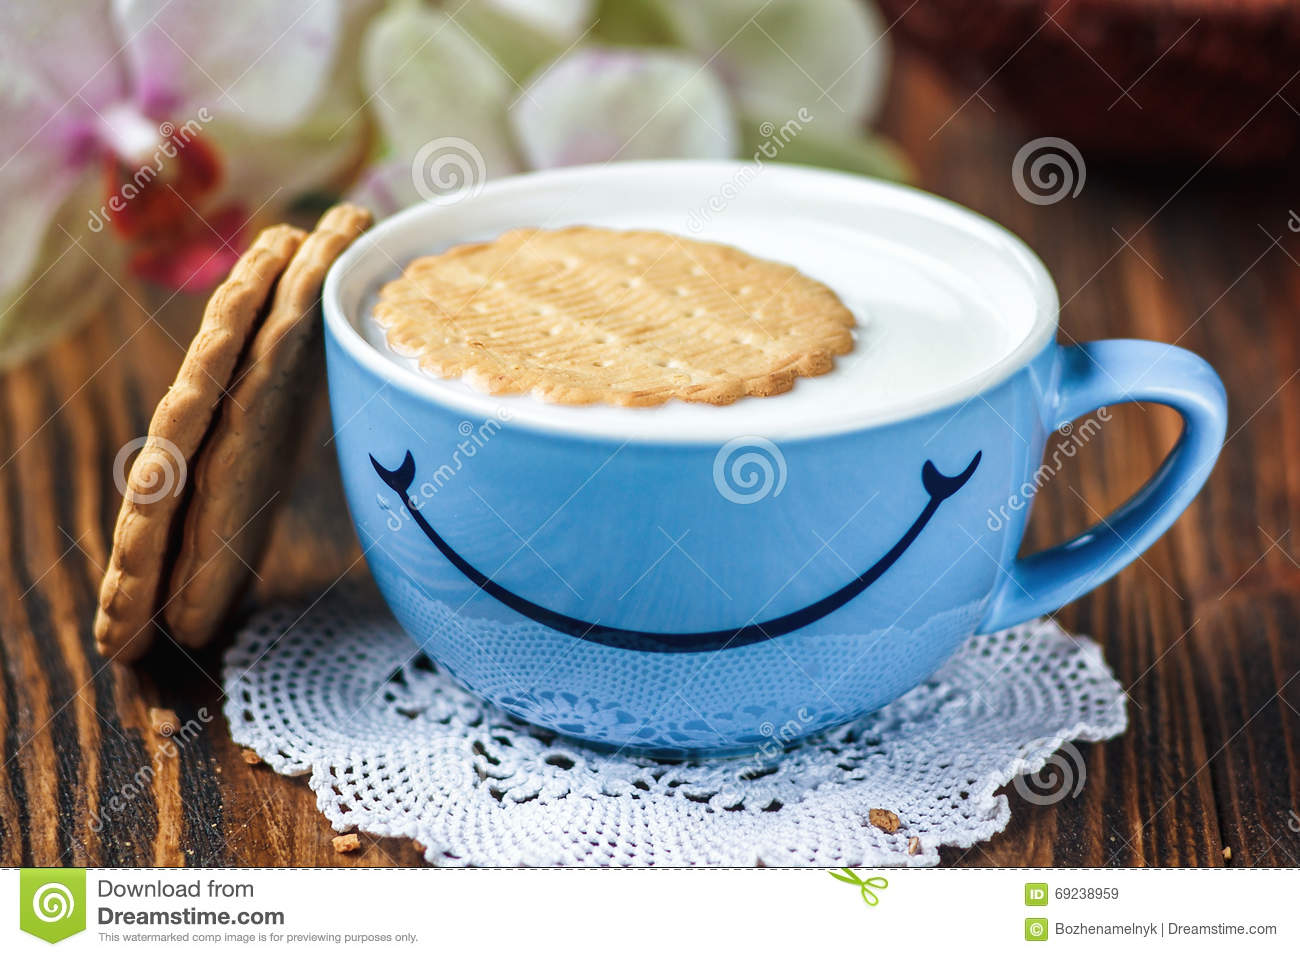 Good morning or Have a nice day message concept - bright blue cup of milk with cookies. Cup of milk with smile. Health and diet co